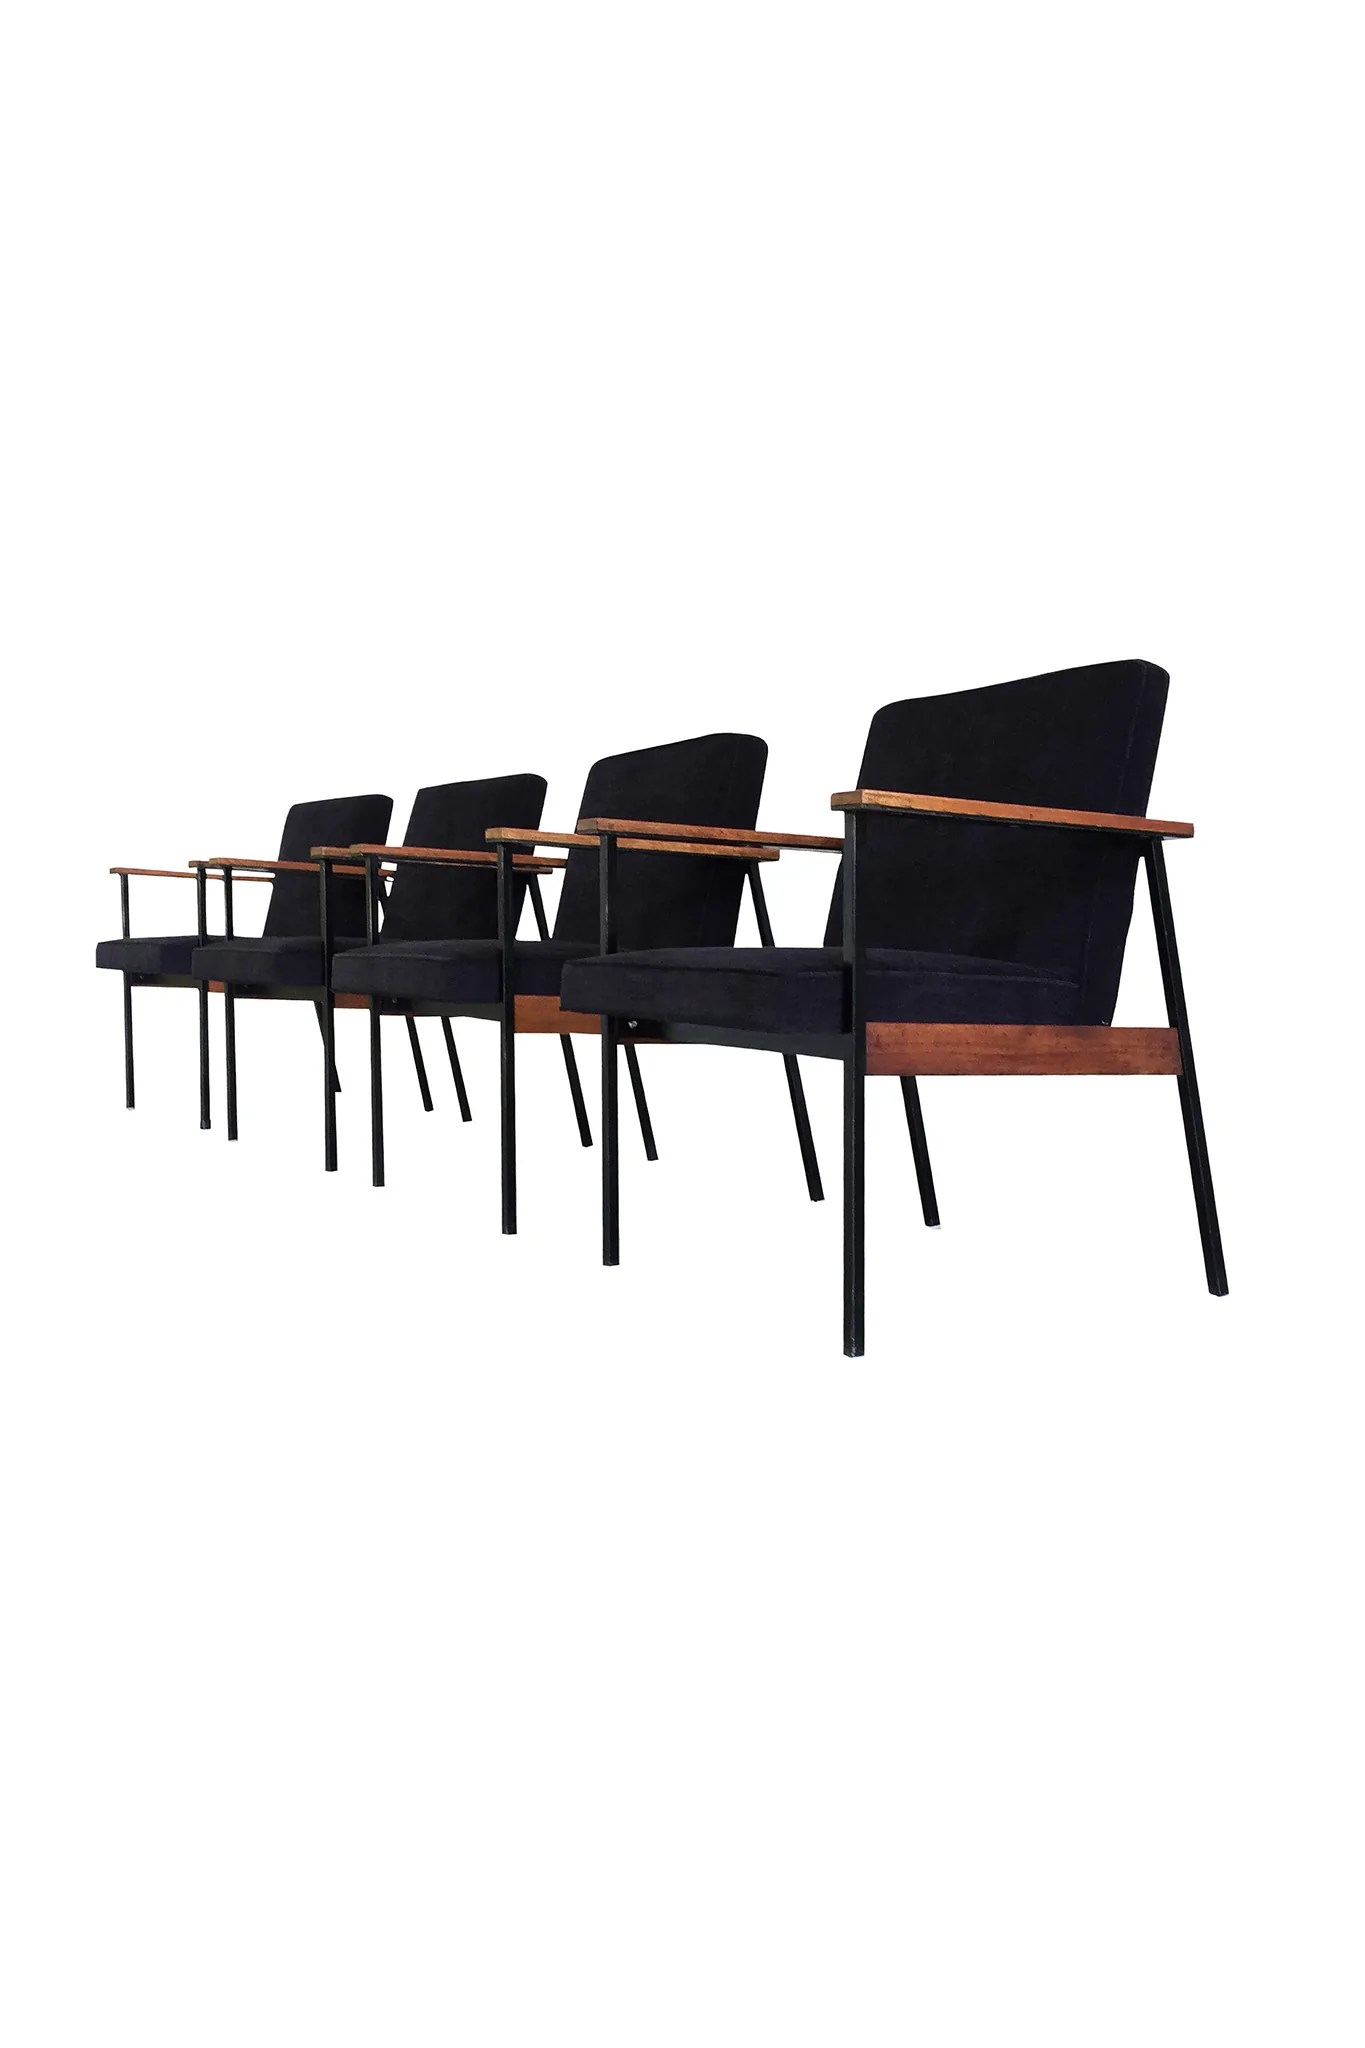 Paul Mccobb Chairs Mid Century Modern Office Chairs Attributed To Paul Mccobb A Set Of 4